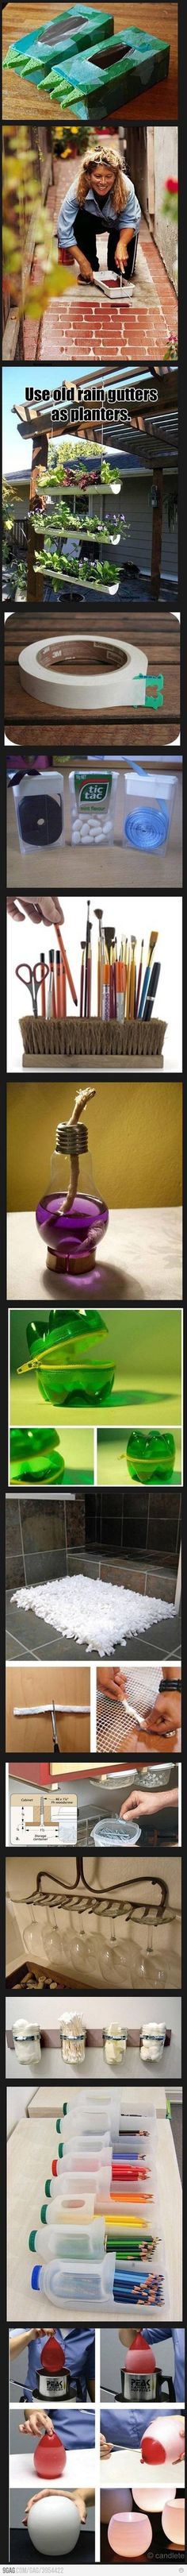 Awesome recycling ideas!